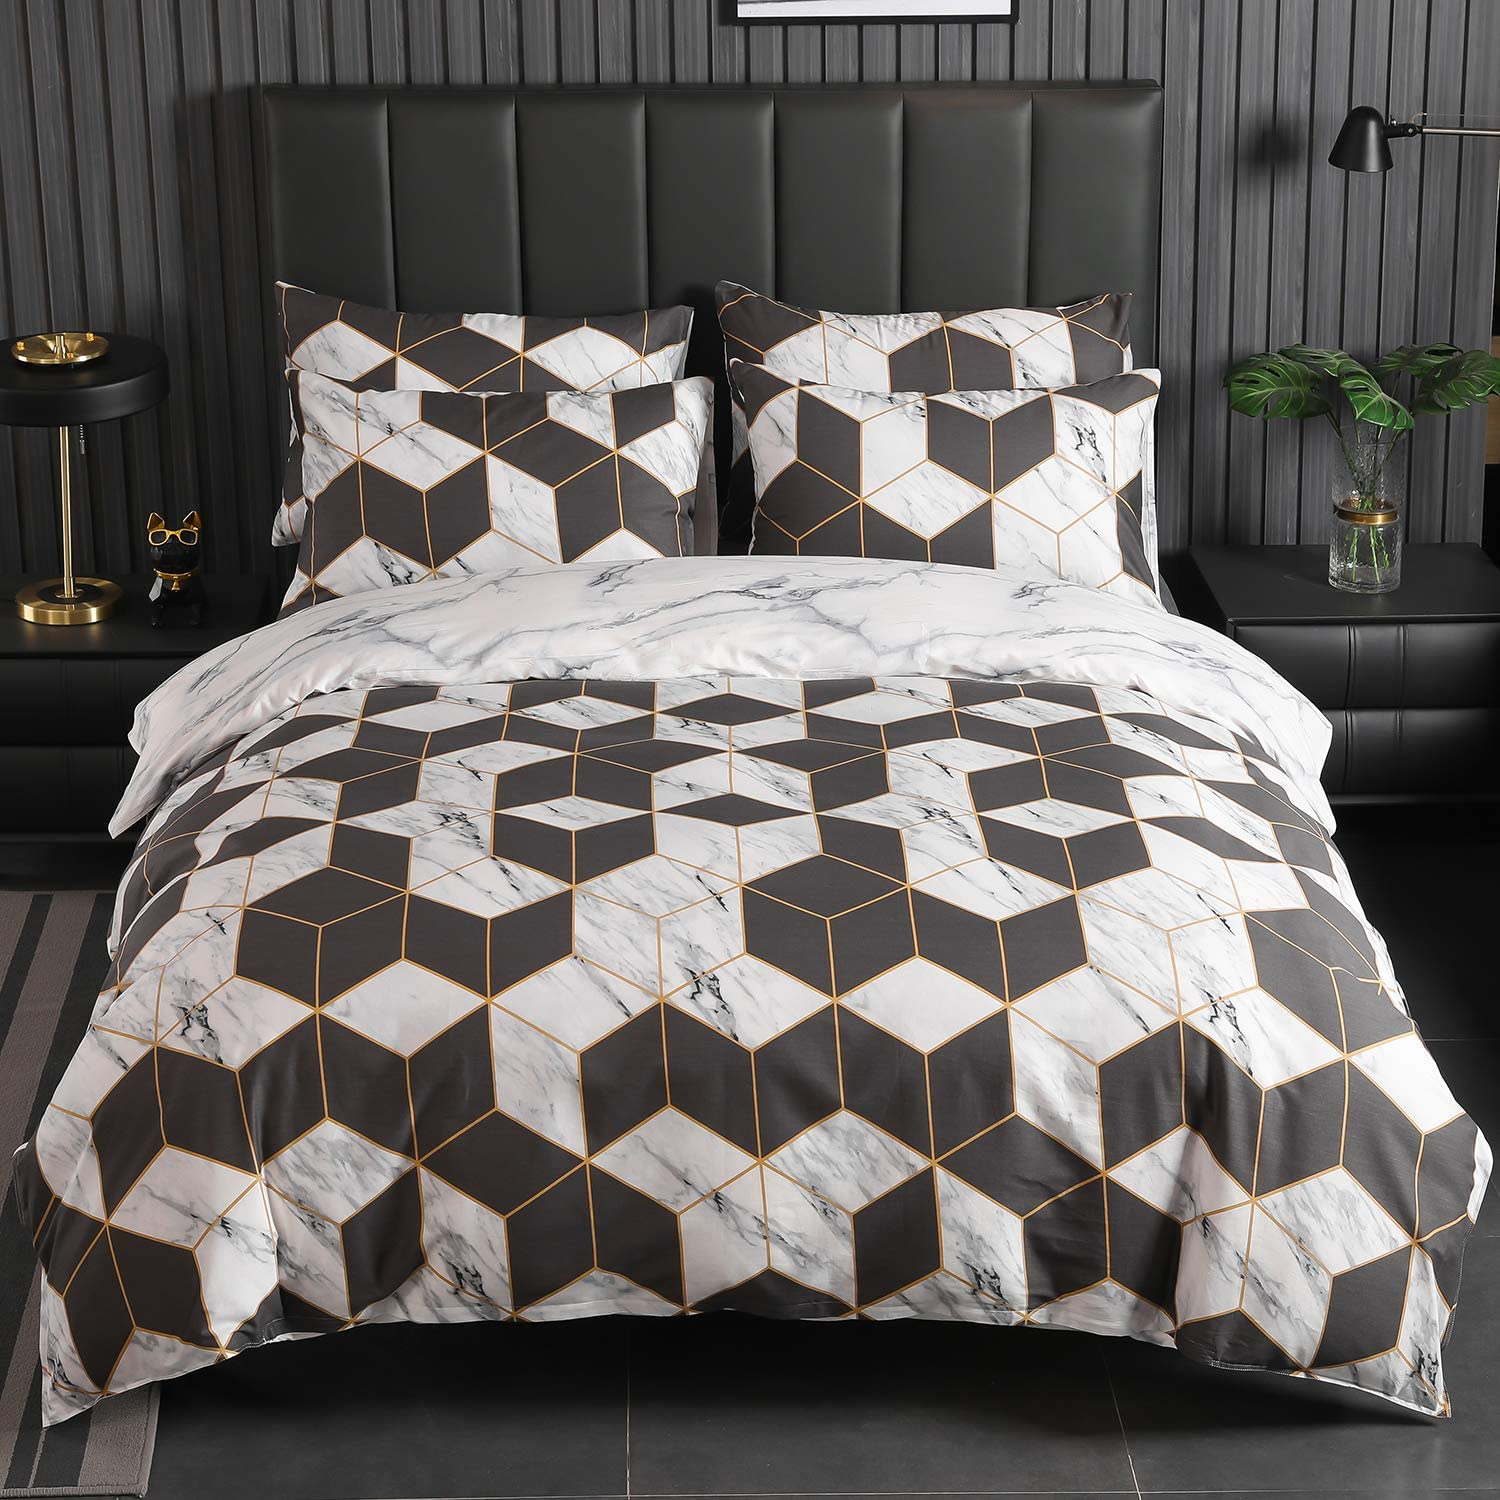 Kosa Bedding 100% Cotton Duvet Cover Set,Brown and White Marble Printed Duvet Cover with Zipper Closure,Soft and Easy Care Comforter Cover Set,Reversible Pattern Bedding Set for All Season(Queen Size)